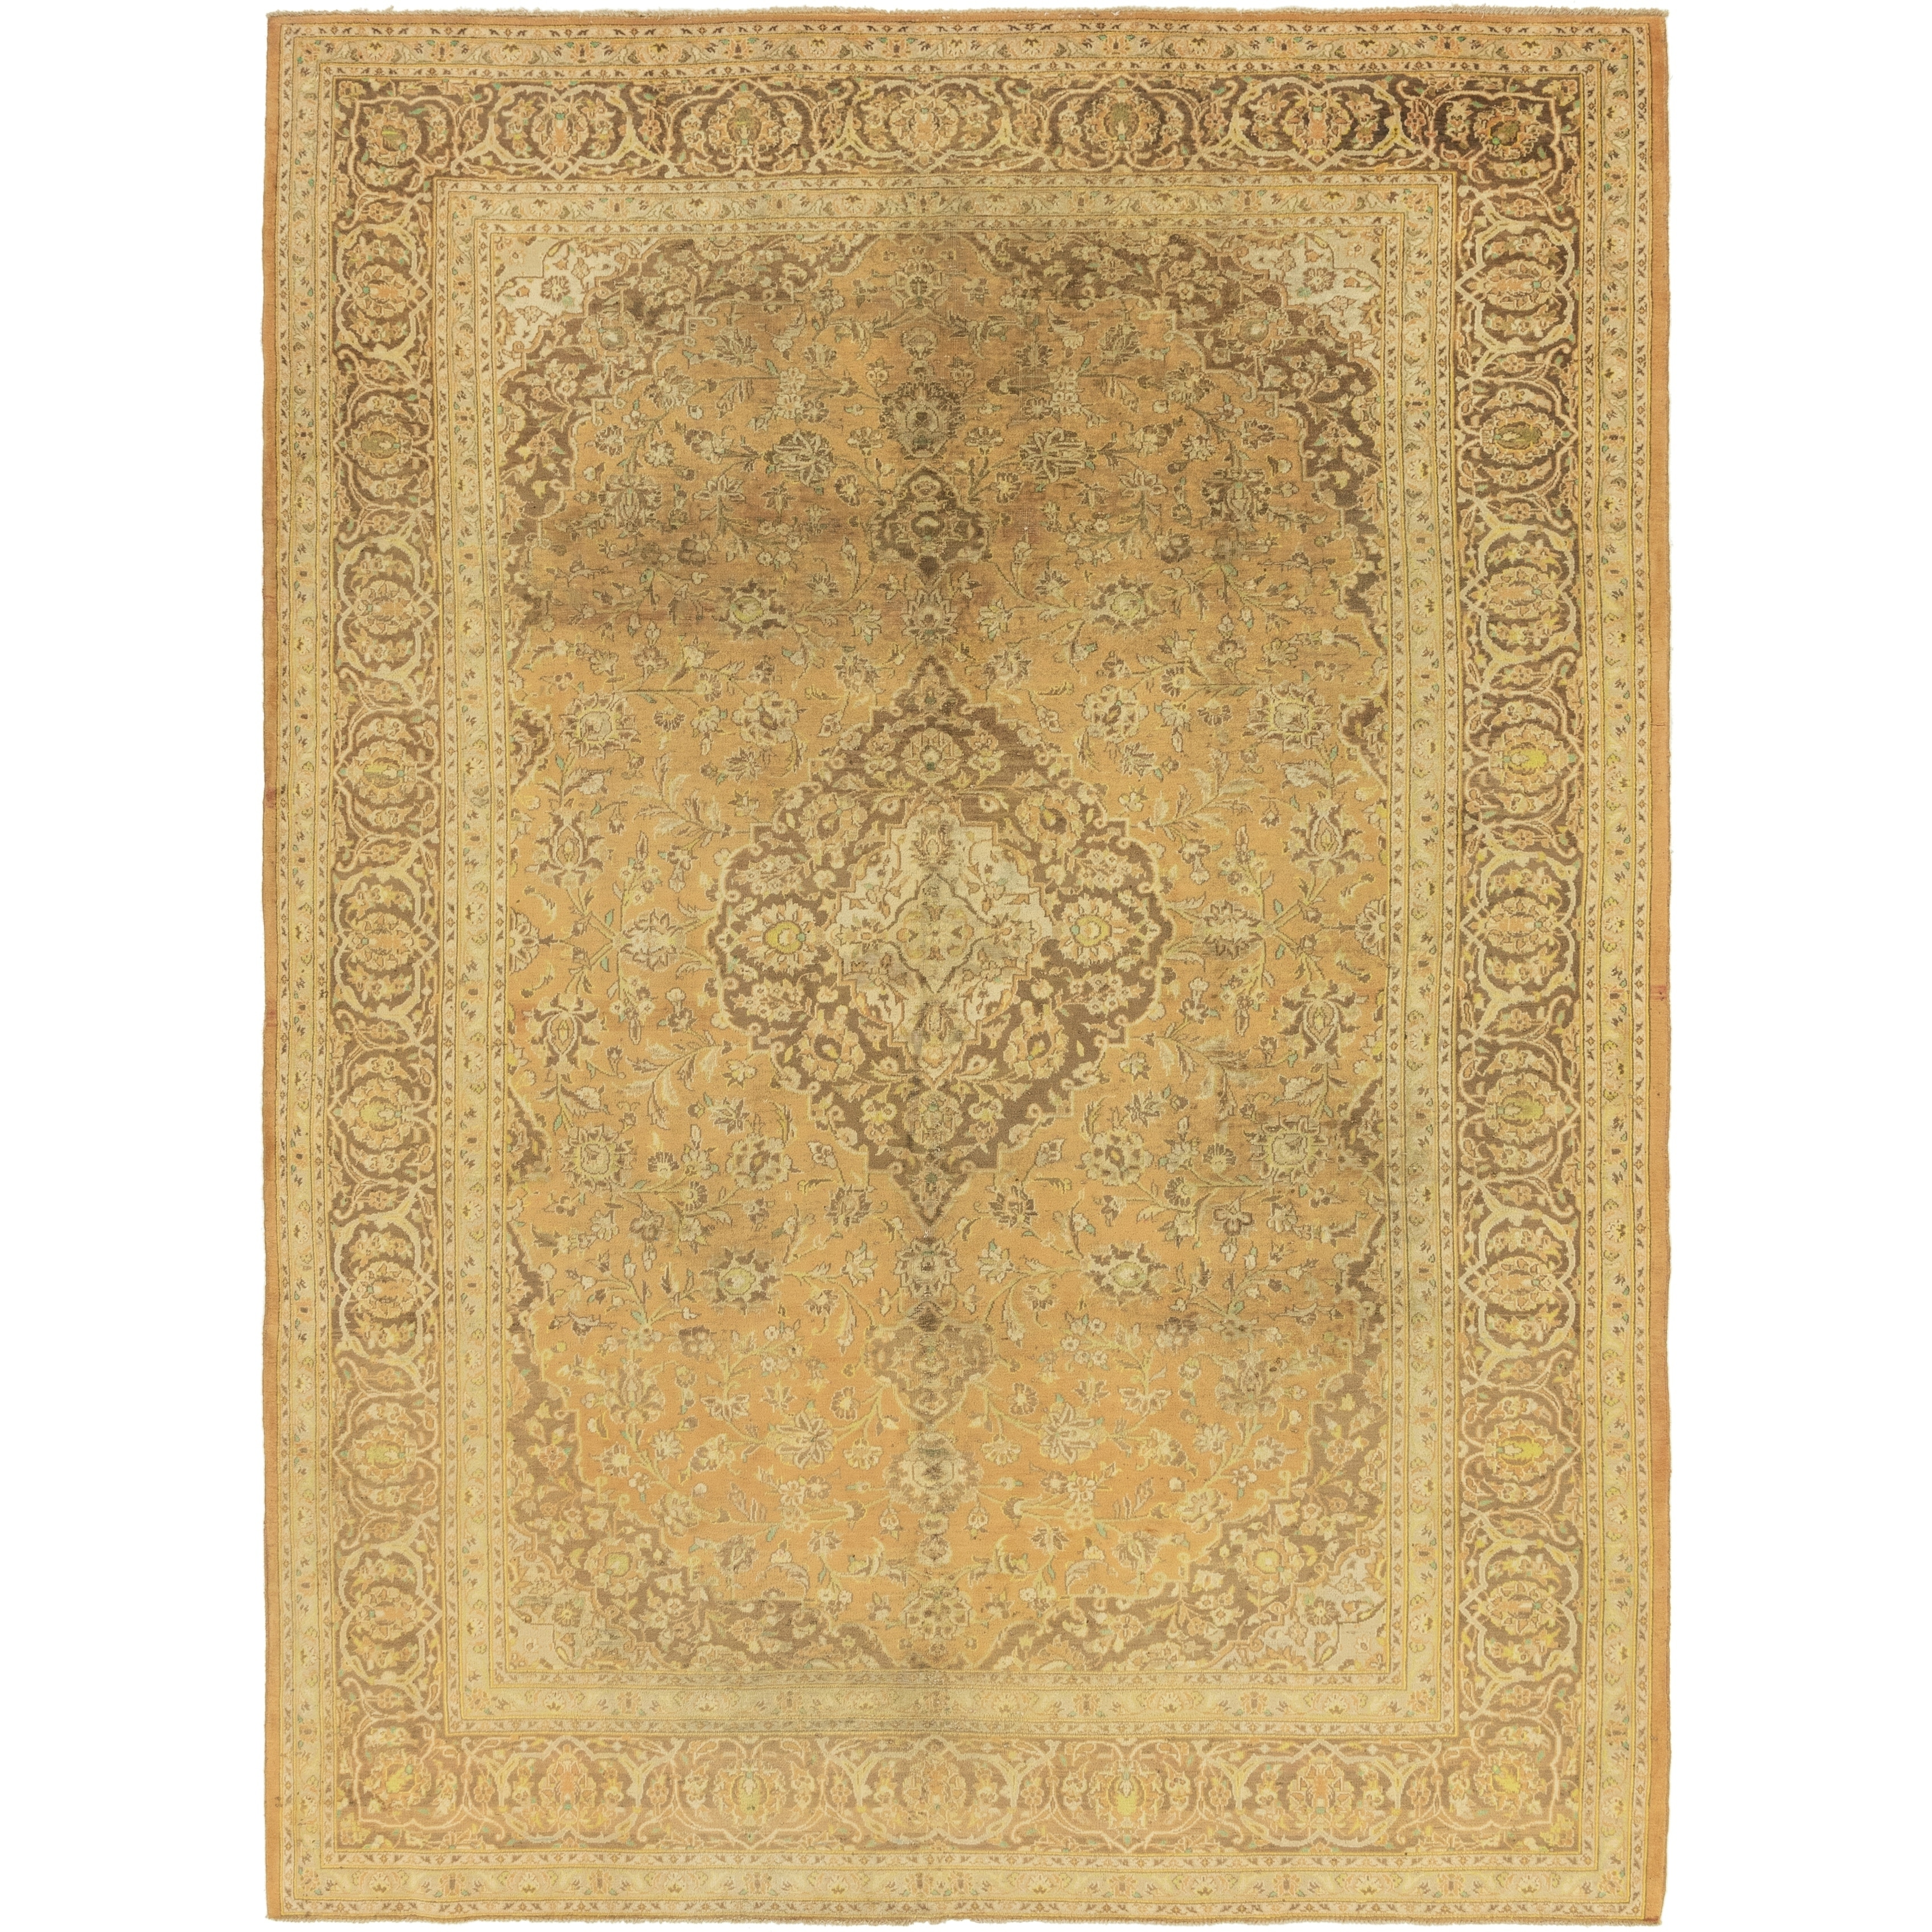 Hand Knotted Kashan Semi Antique Wool Area Rug - 9 9 x 13 6 (peach - 9 9 x 13 6)